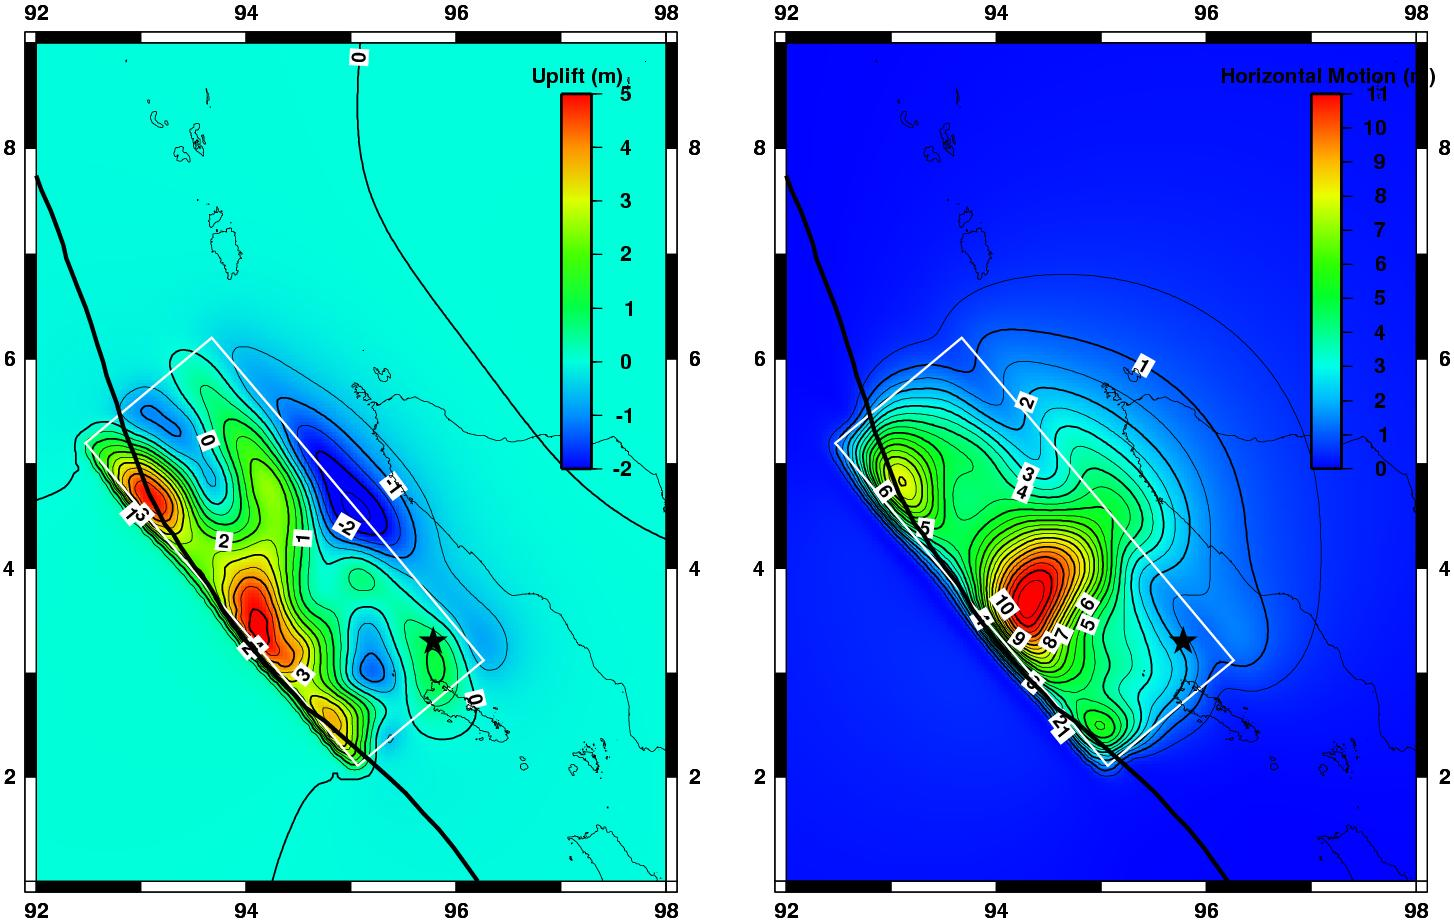 Uplift and Horizontal Motion from Tsunami-Generating Earthquake  - related image preview